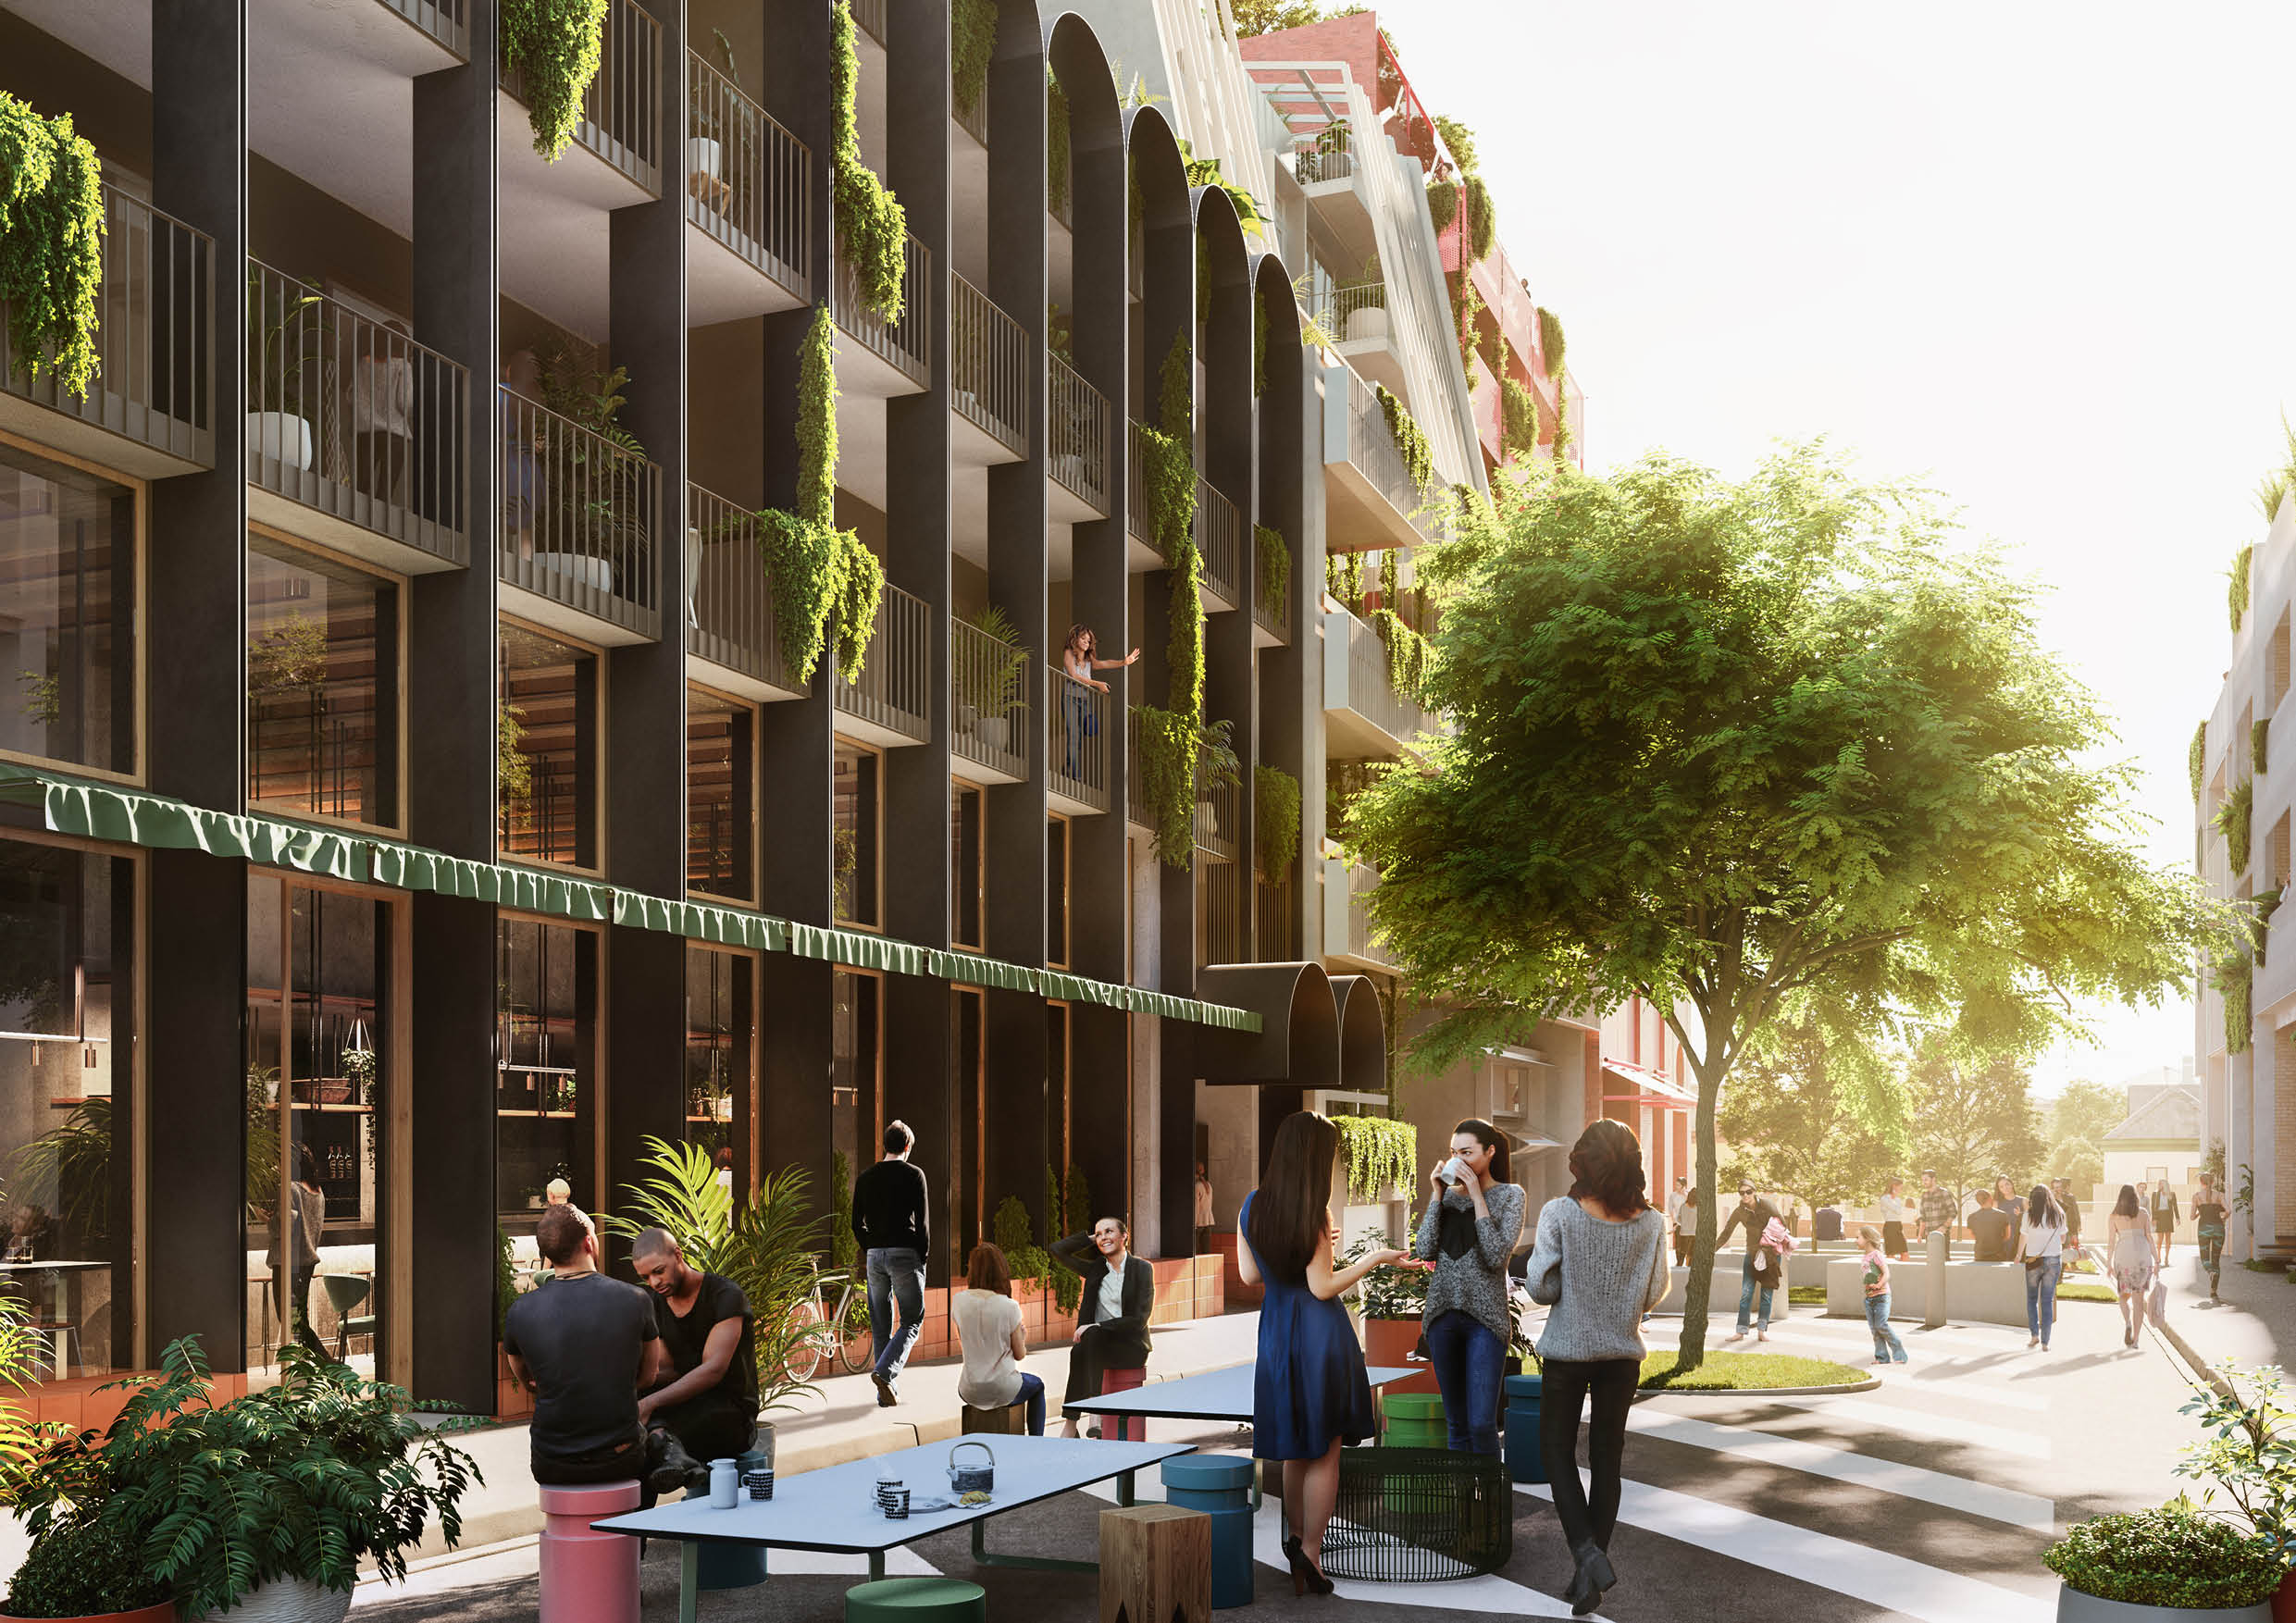 Skye House will look onto the pedestrianised and activated Duckett Street pocket park